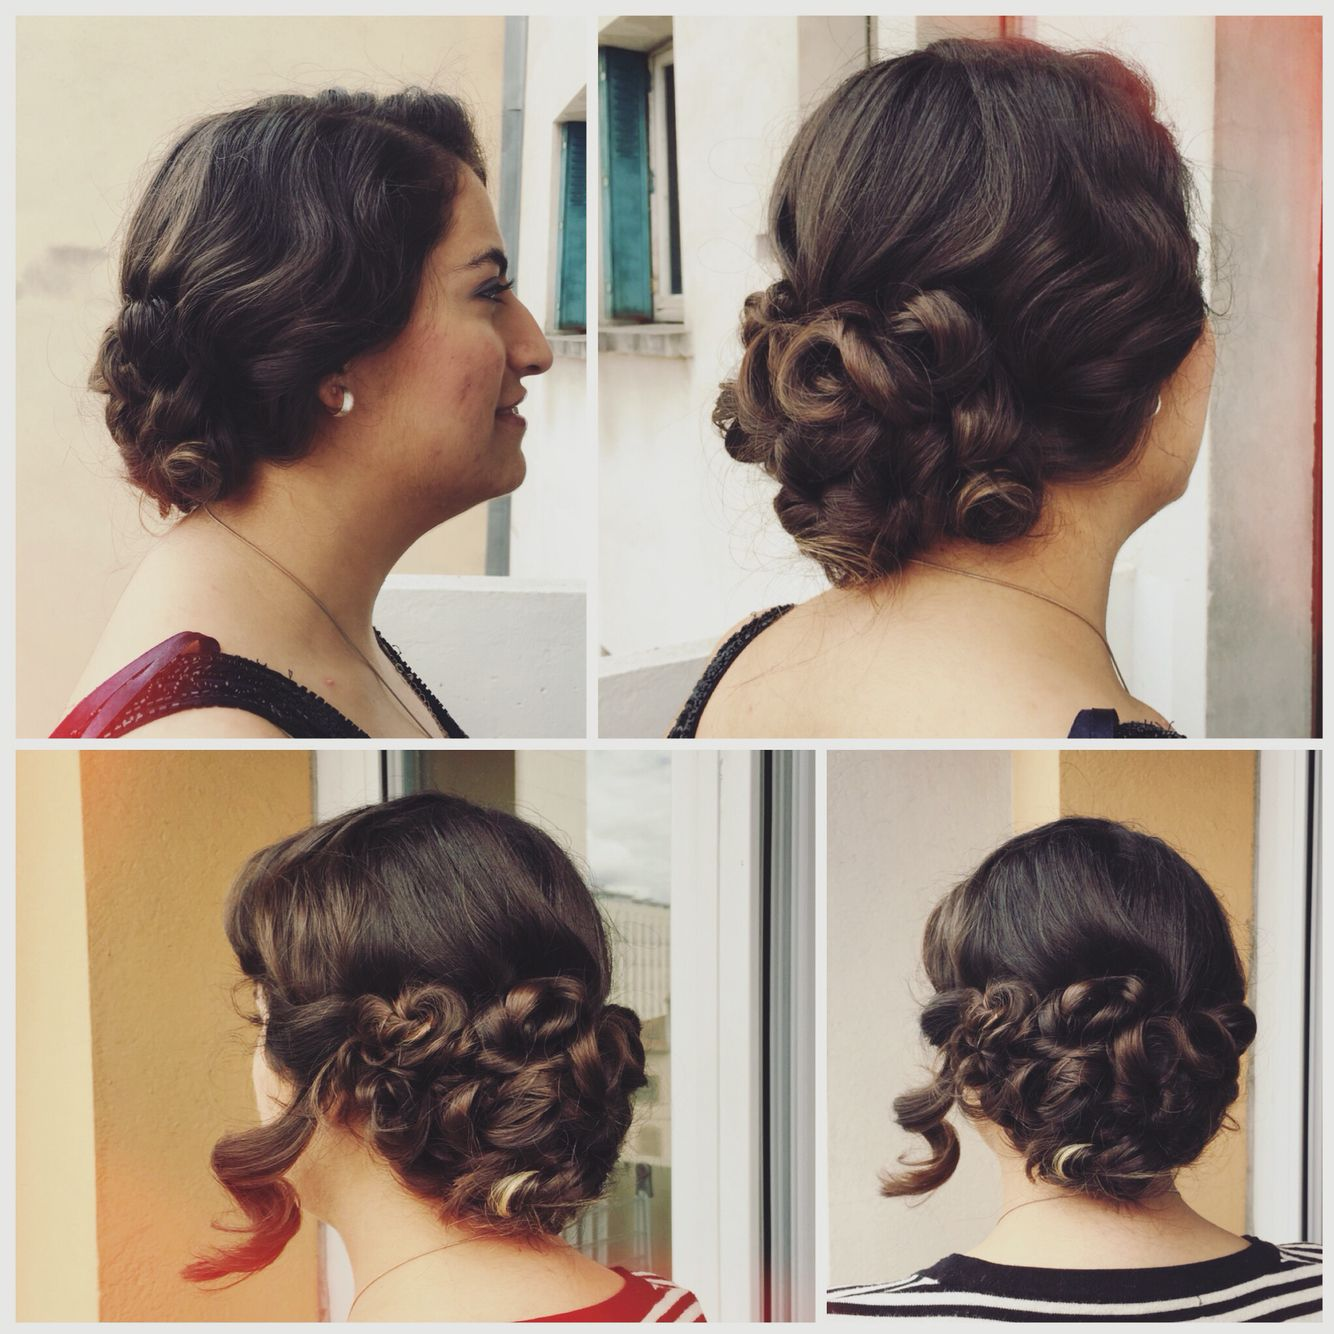 Flapper girl updo for long thick hair | Thick hair styles ...